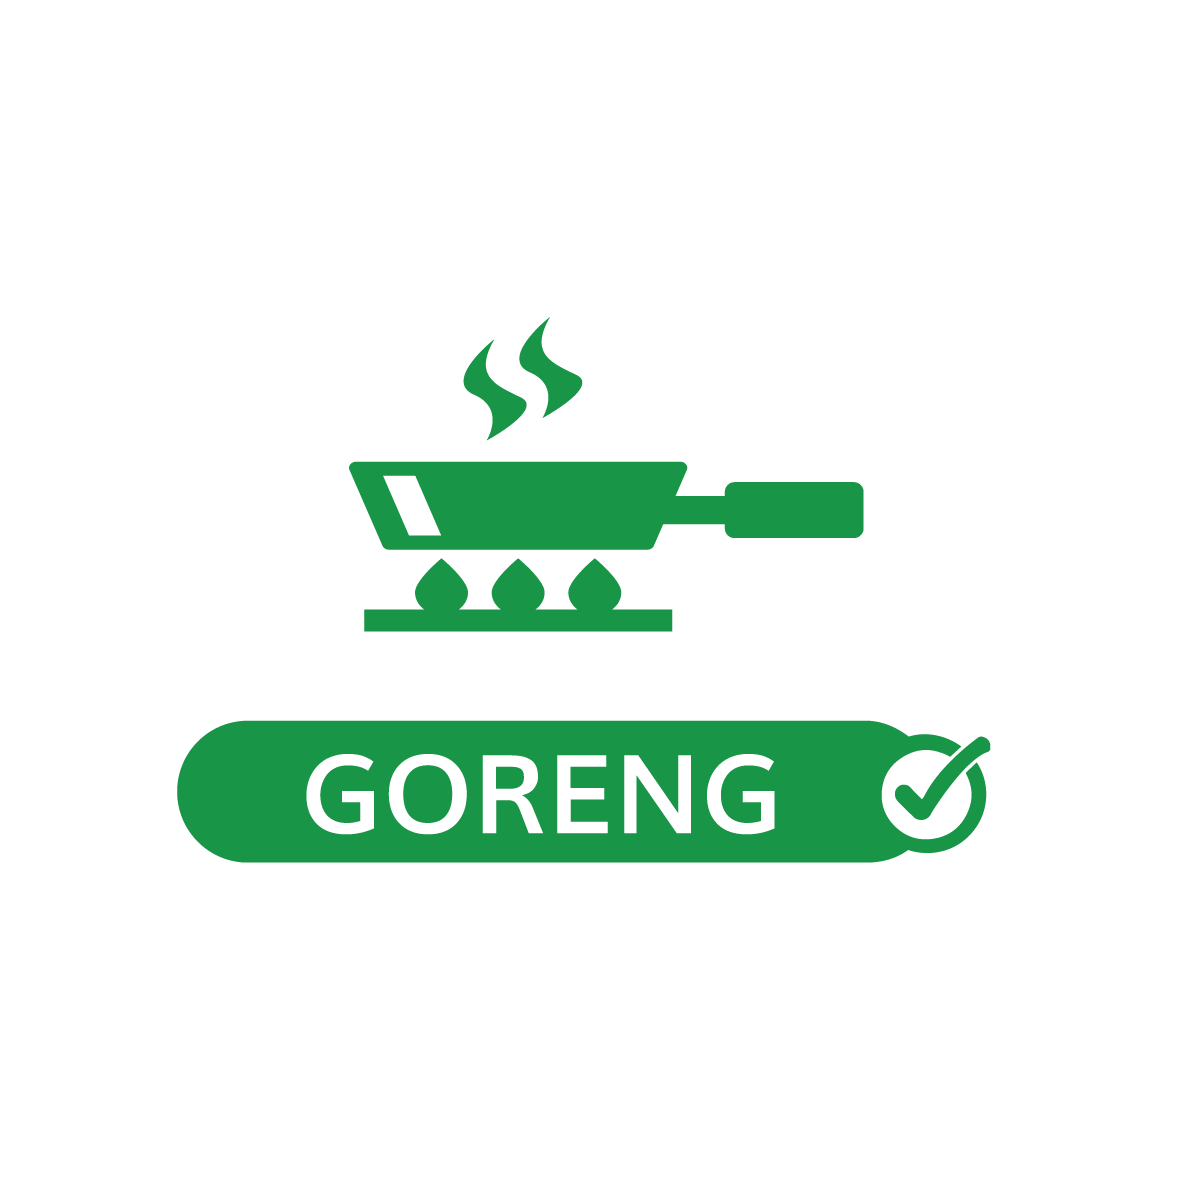 Icon Goreng Vam